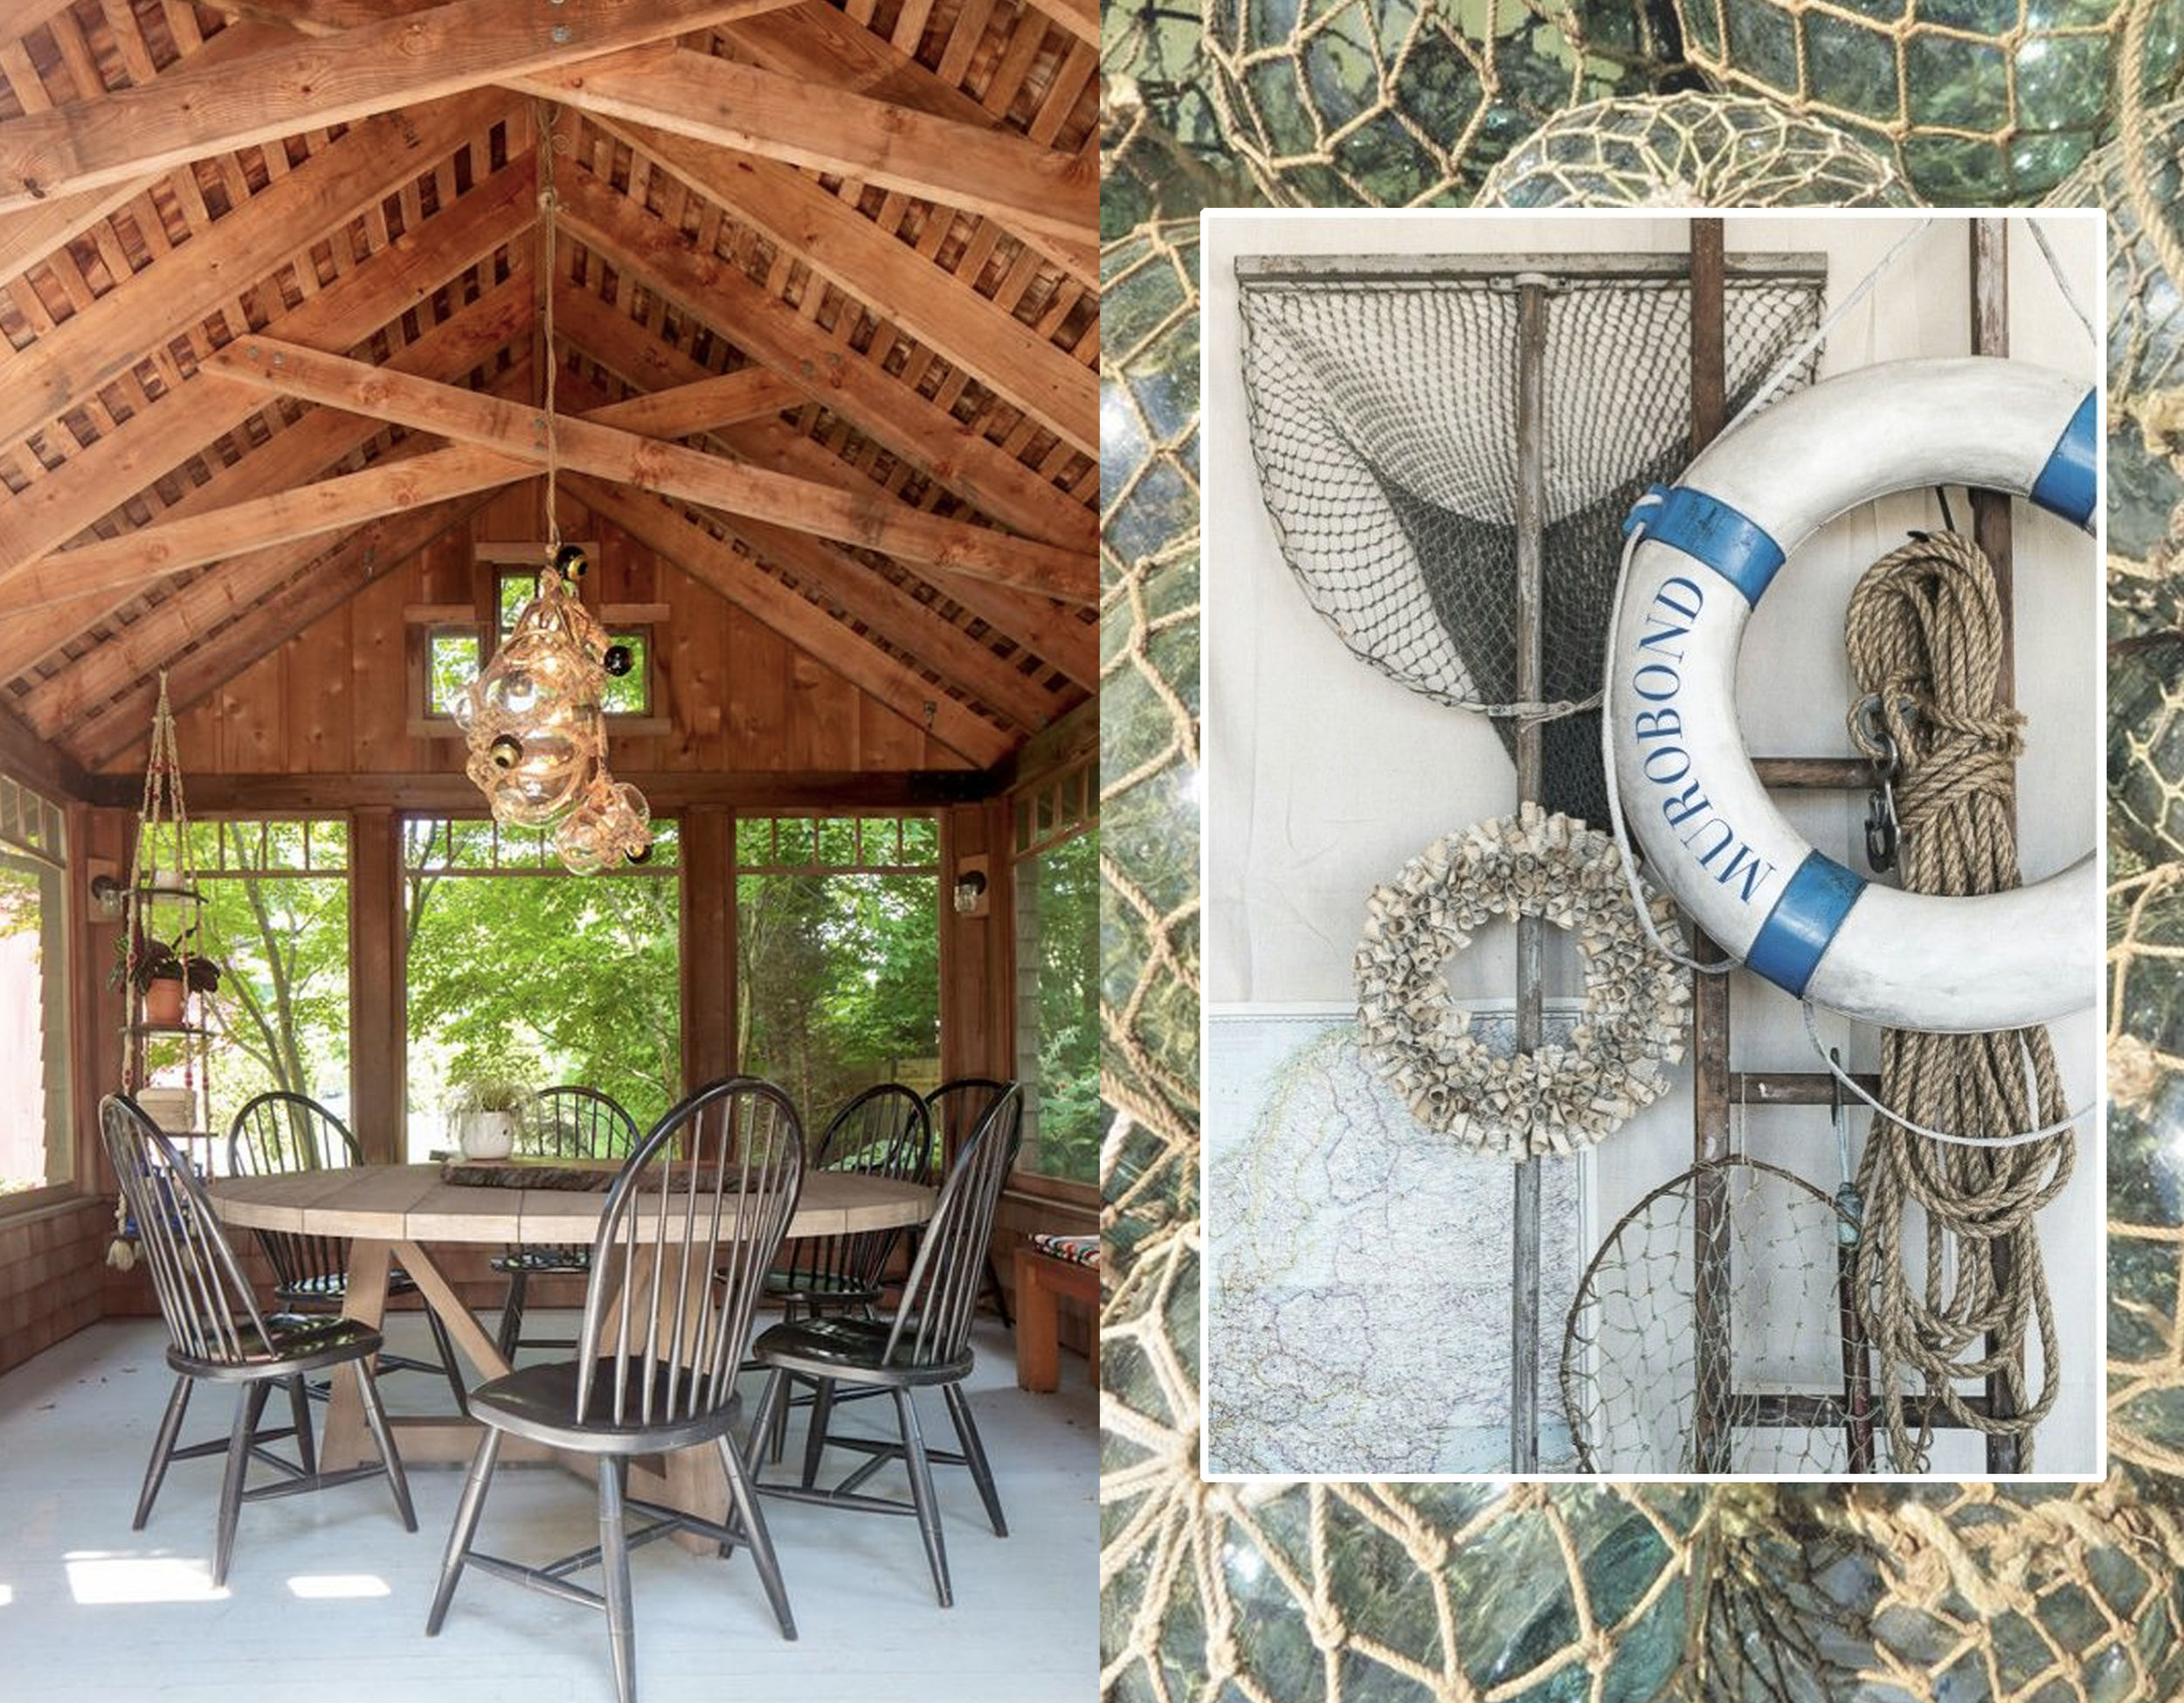 patio via  Remodelista  - vintage fisherman's equipment via  Mr. Jason Grant  - glass fishing balls via  Ebay